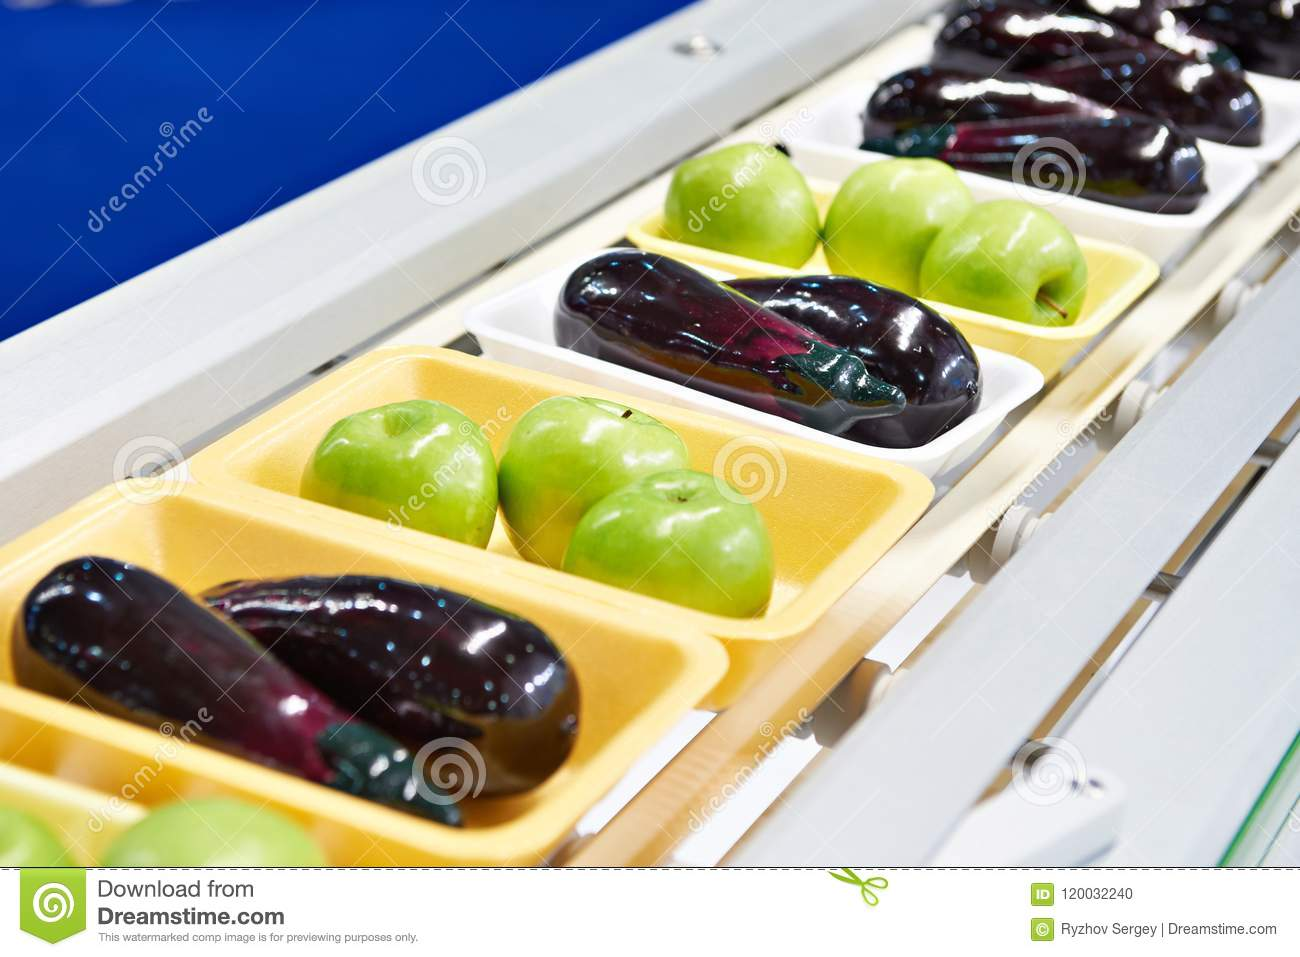 Food products apples and eggplant in plastic pack on conveyor